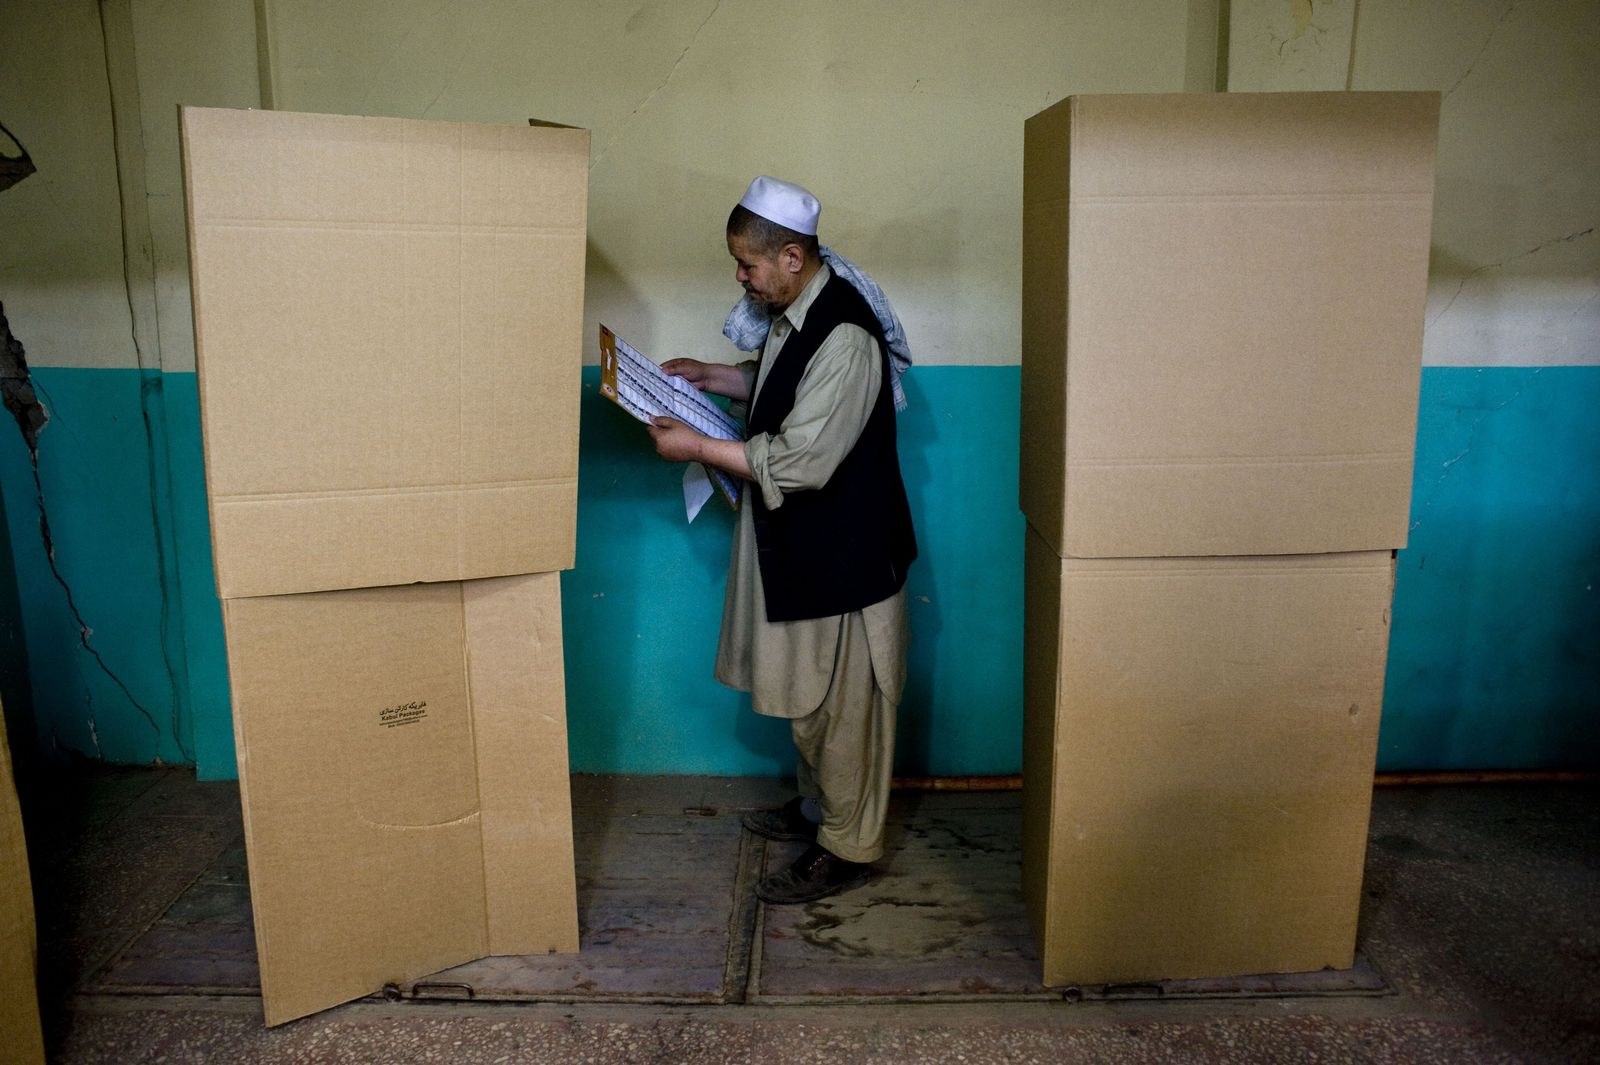 AFGHANISTAN-ELECTIONS-VOTE